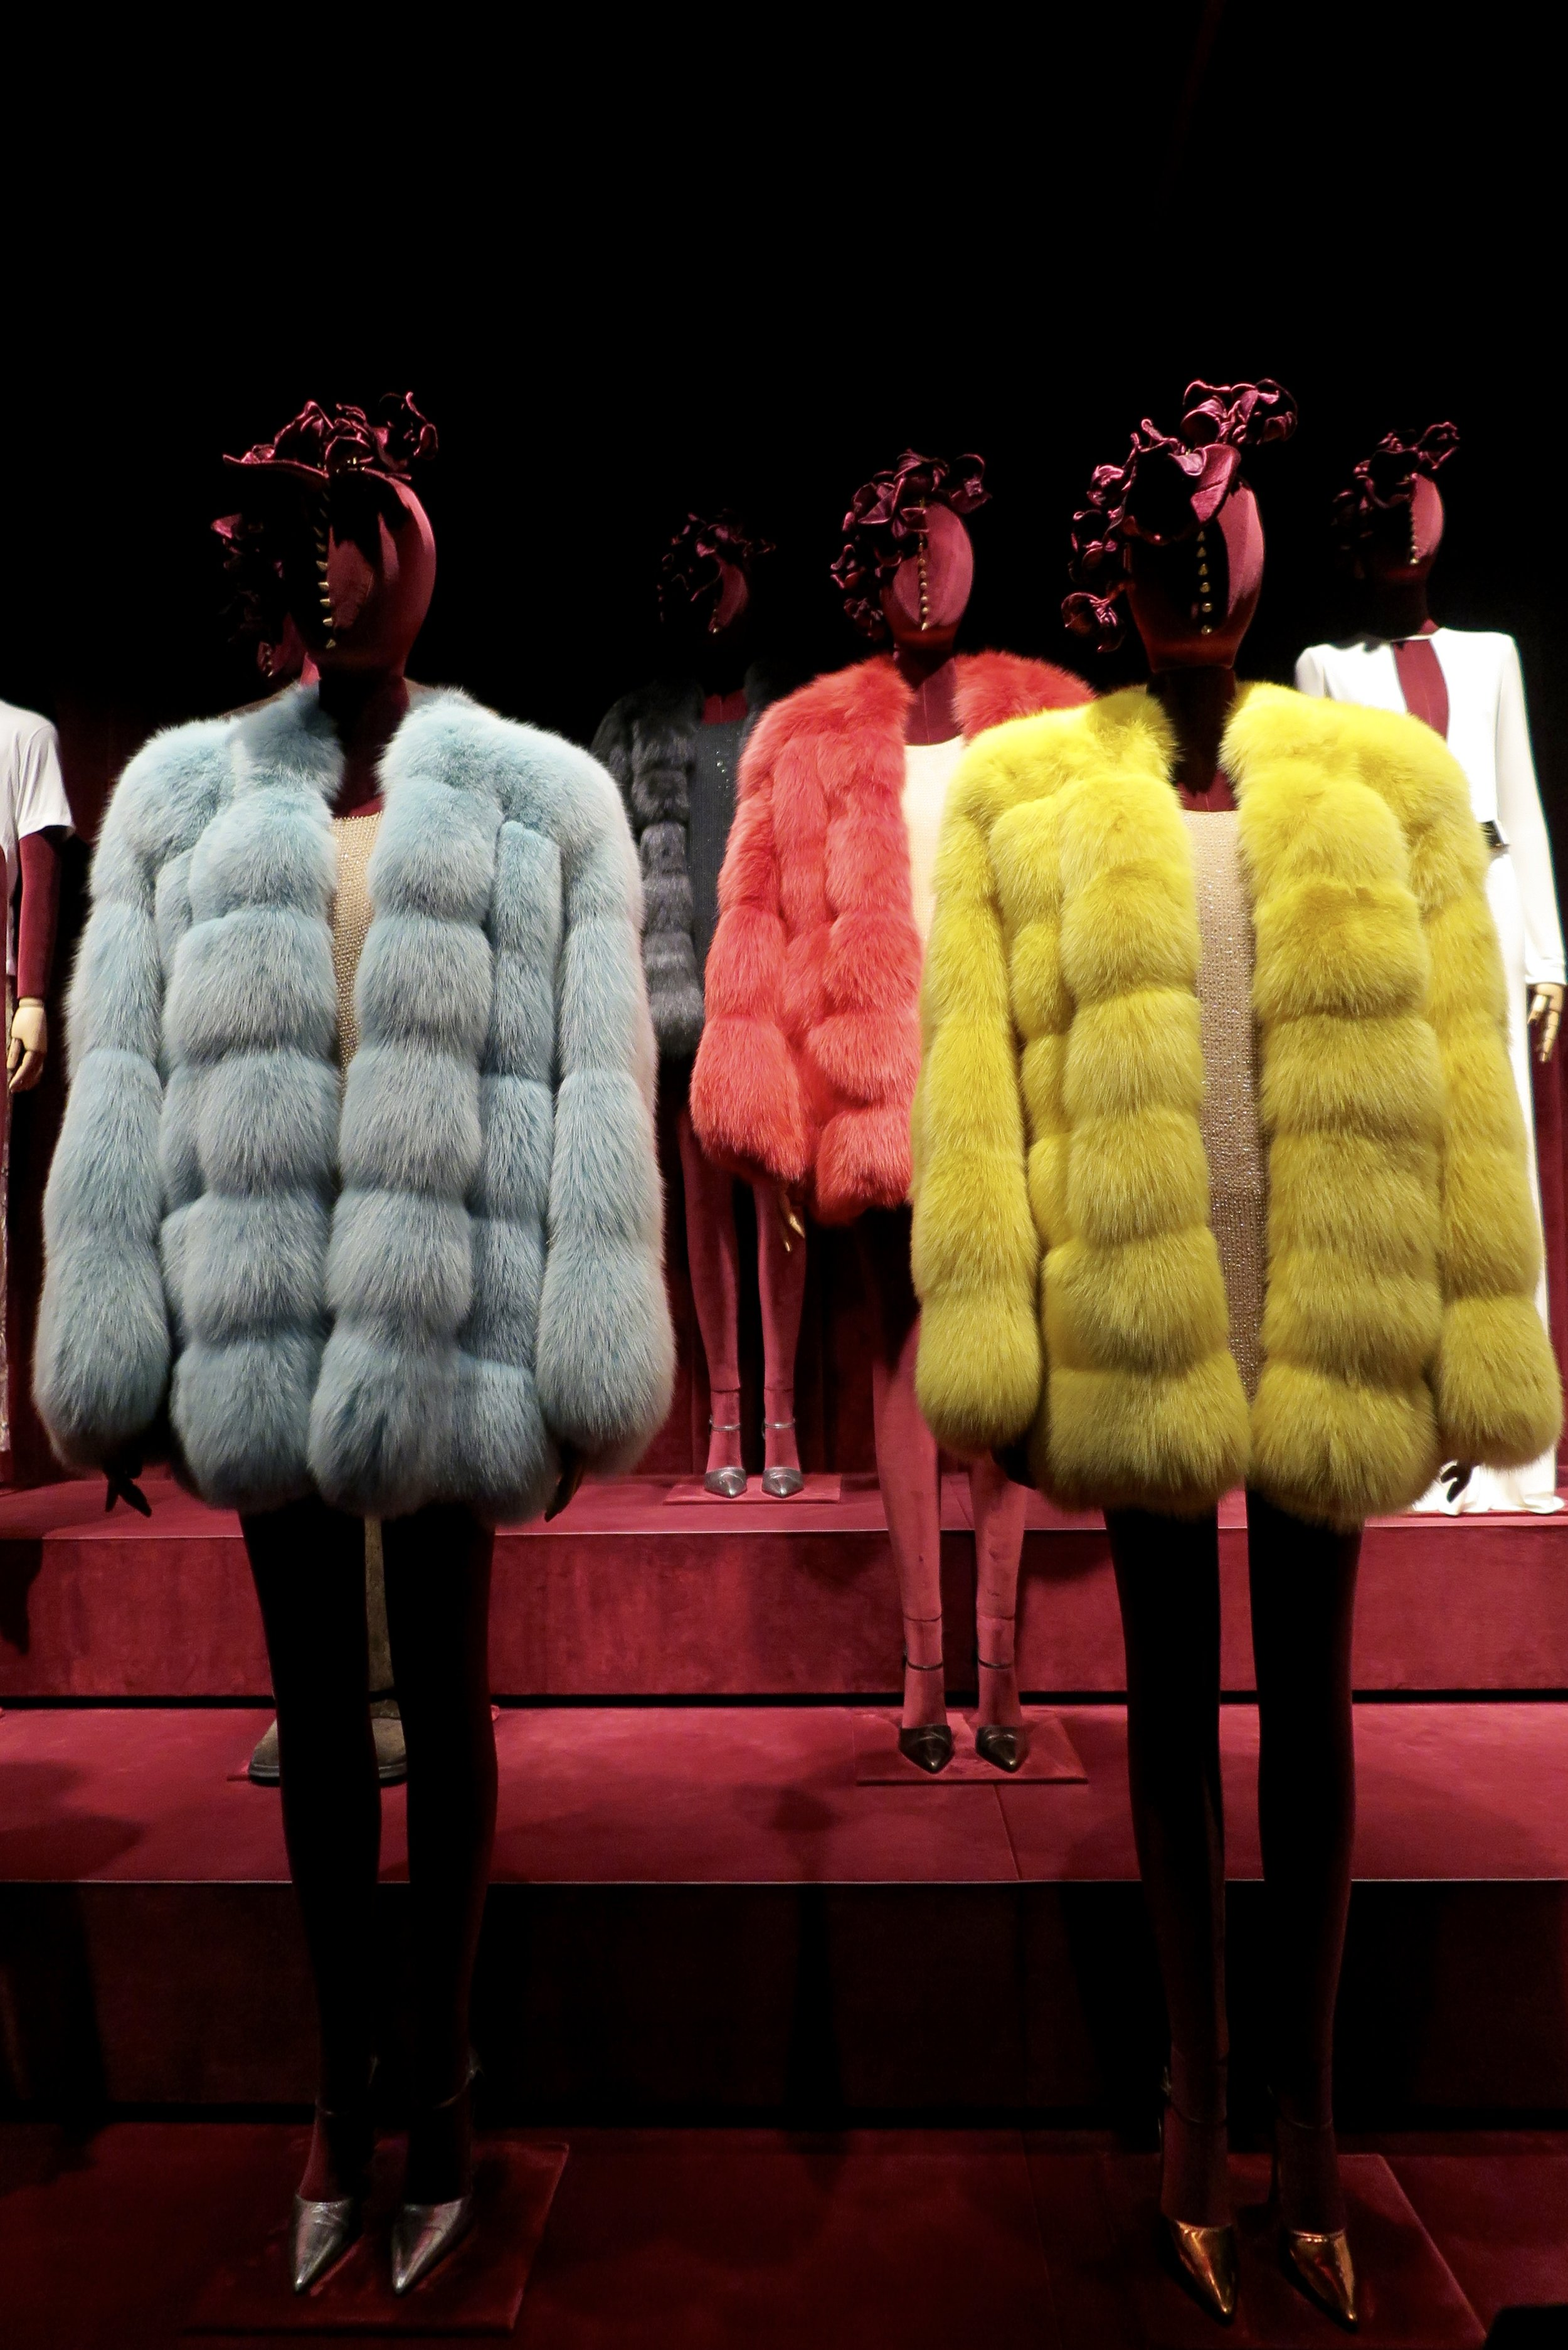 Samantha McNeil Blog - Gucci Museum, Tom Ford